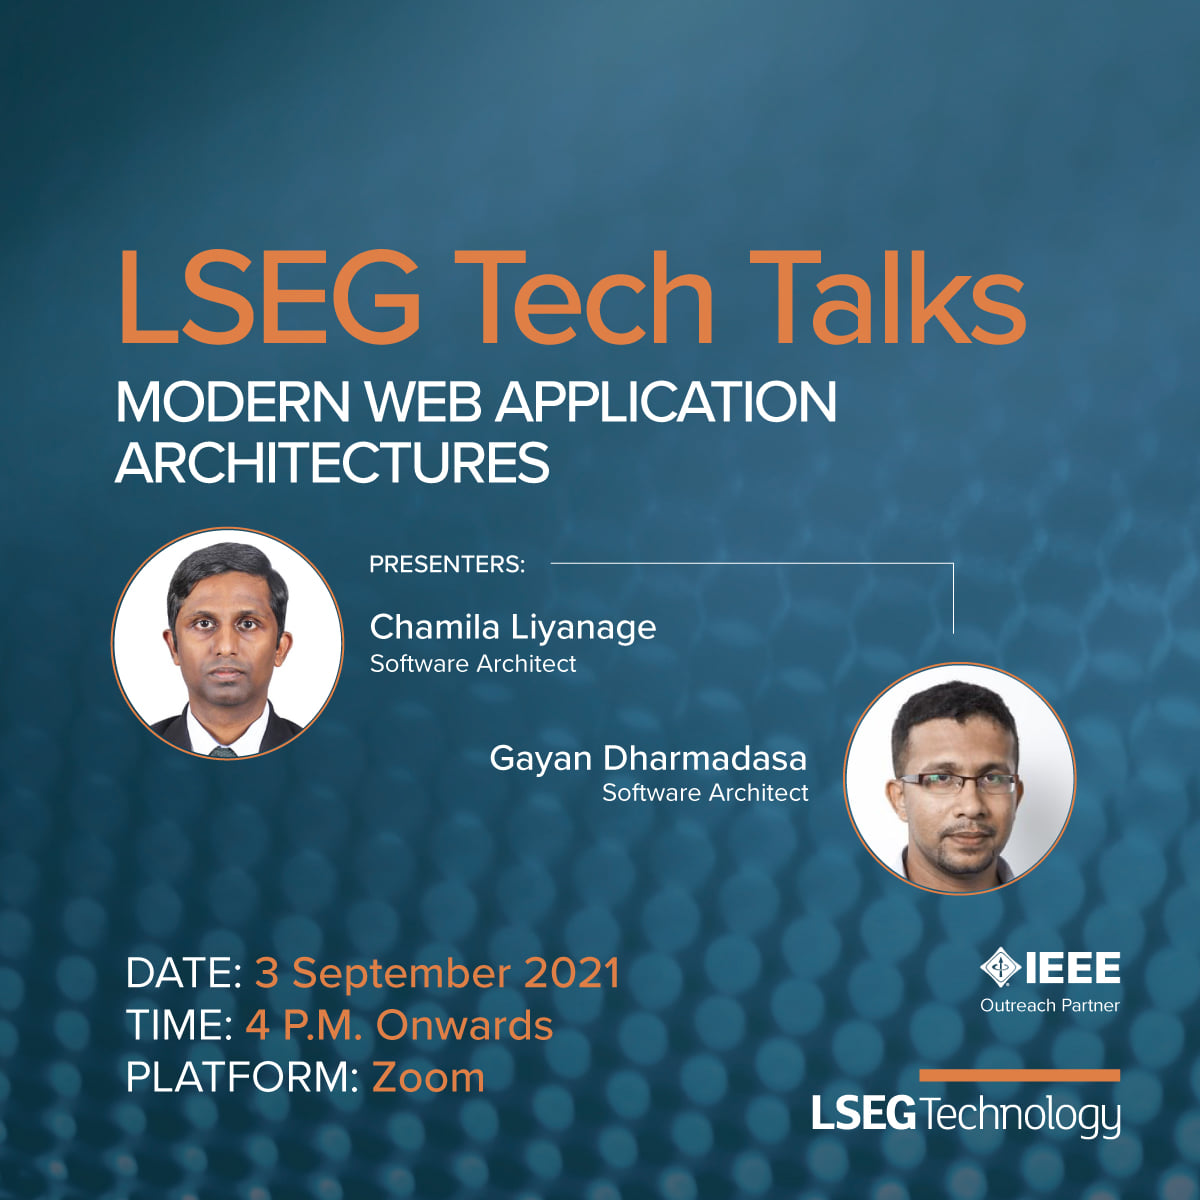 Explore How You Can Build Modern Web Applications at the Upcoming Session of LSEG Tech Talks 1